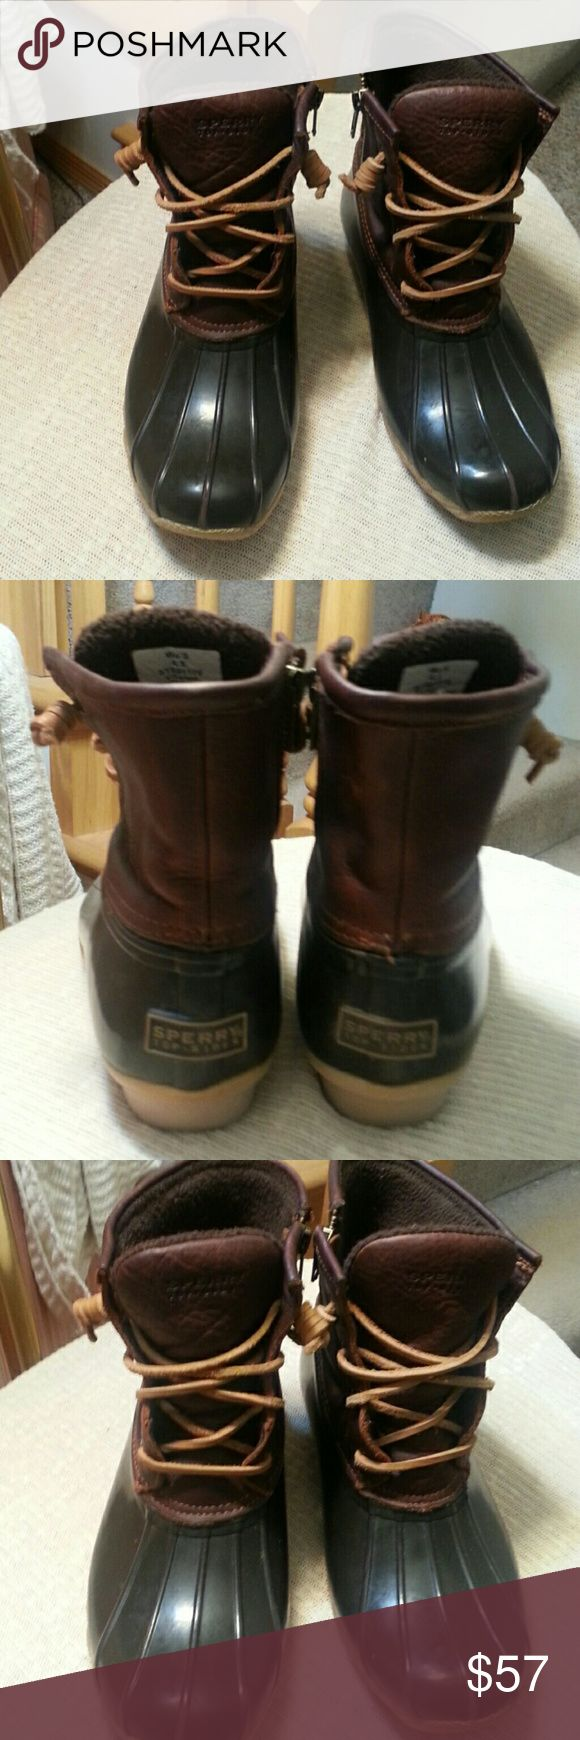 Sperry Top-Sider Duck Boots size 6.5 Gently worn boots with warm microfleece inside Sperry Top-Sider Shoes Winter & Rain Boots